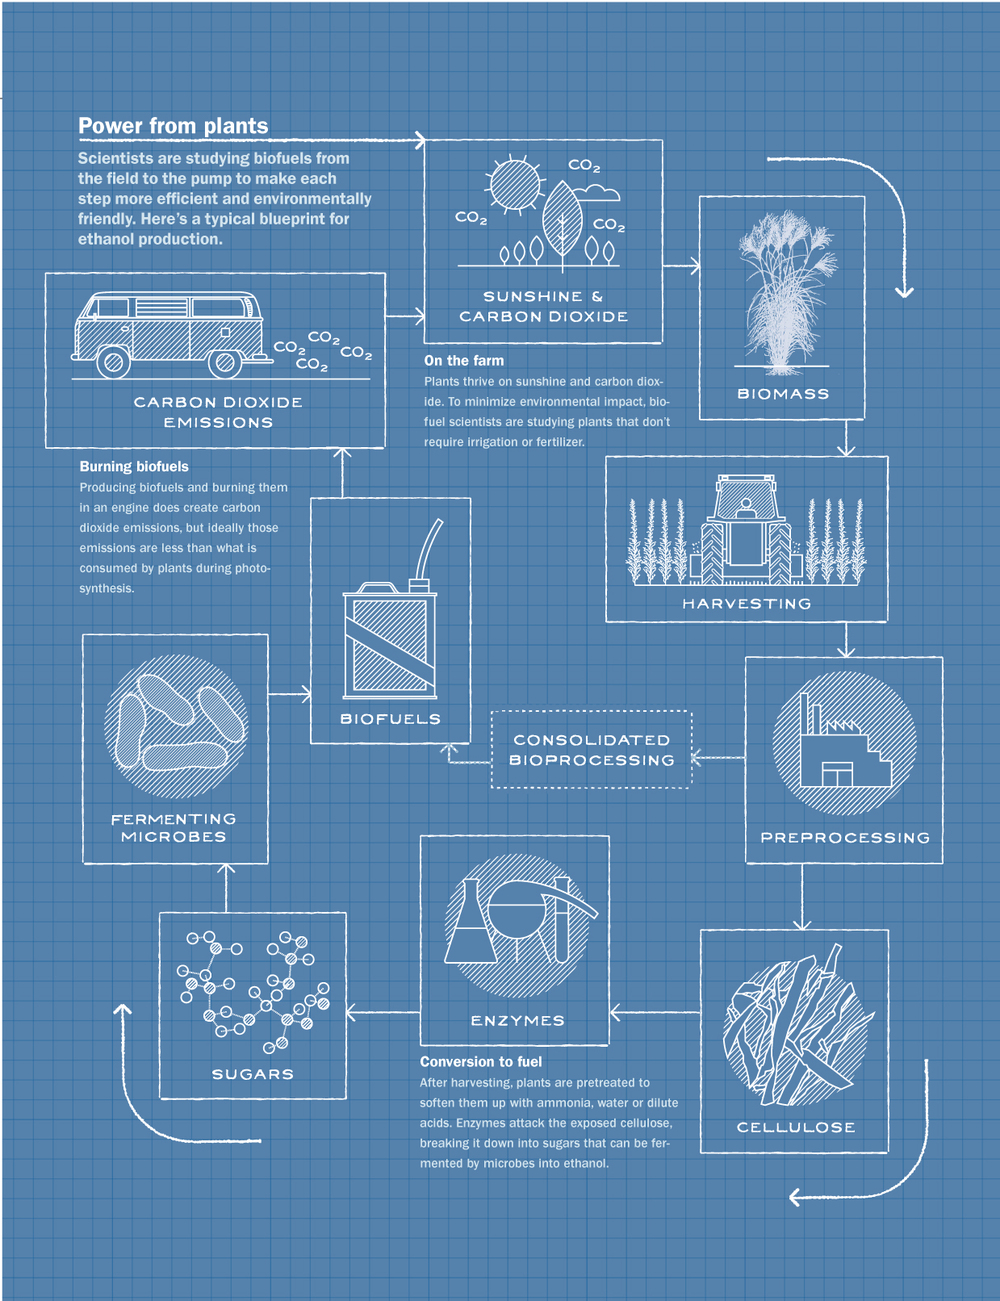 Science News Biofuels Information Graphic